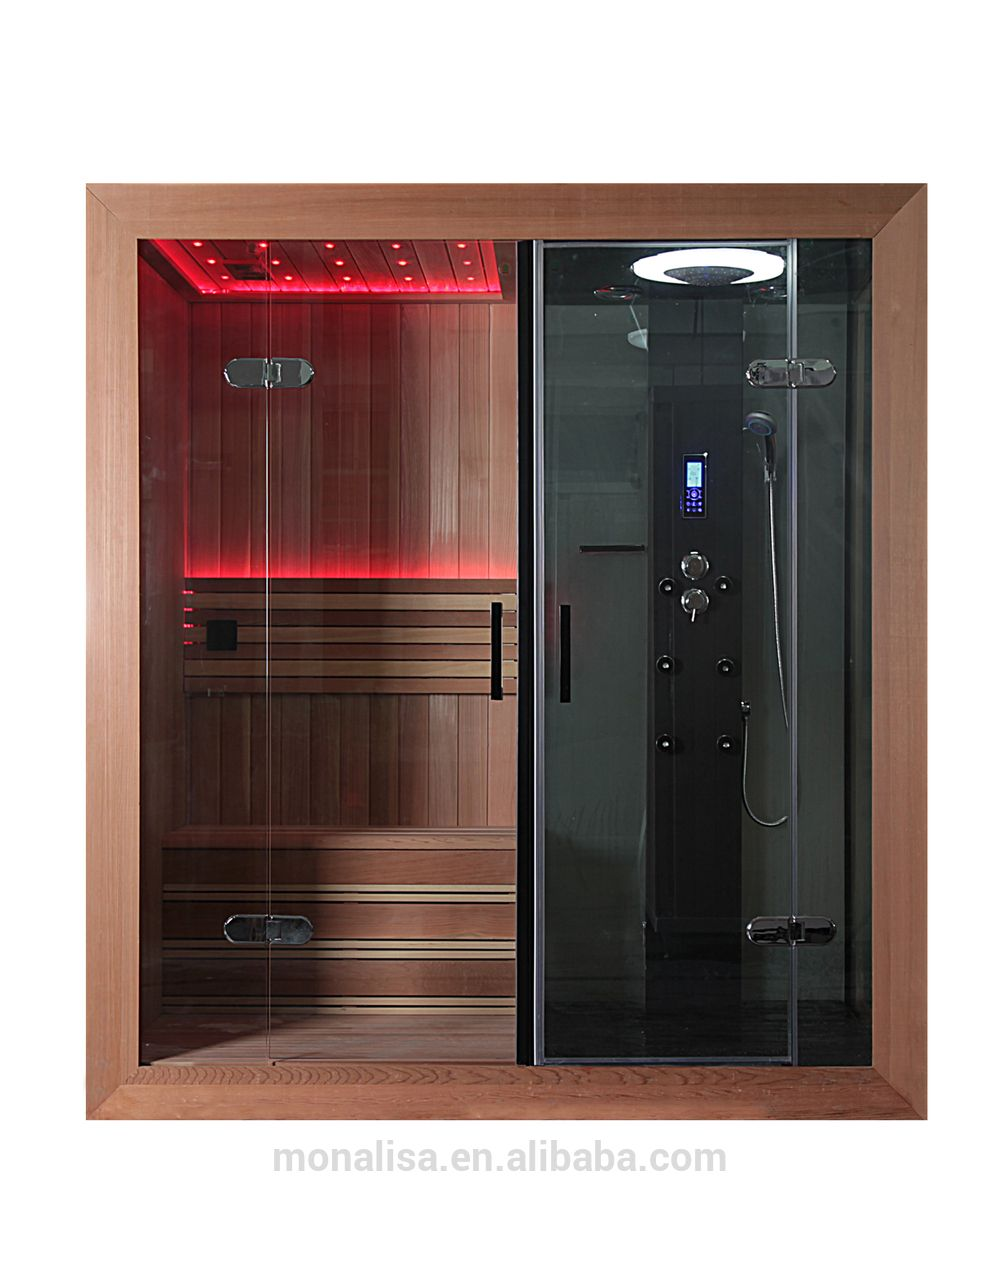 Luxury Bathroom Design Portable Led Steam Shower Sauna Combos Room ...